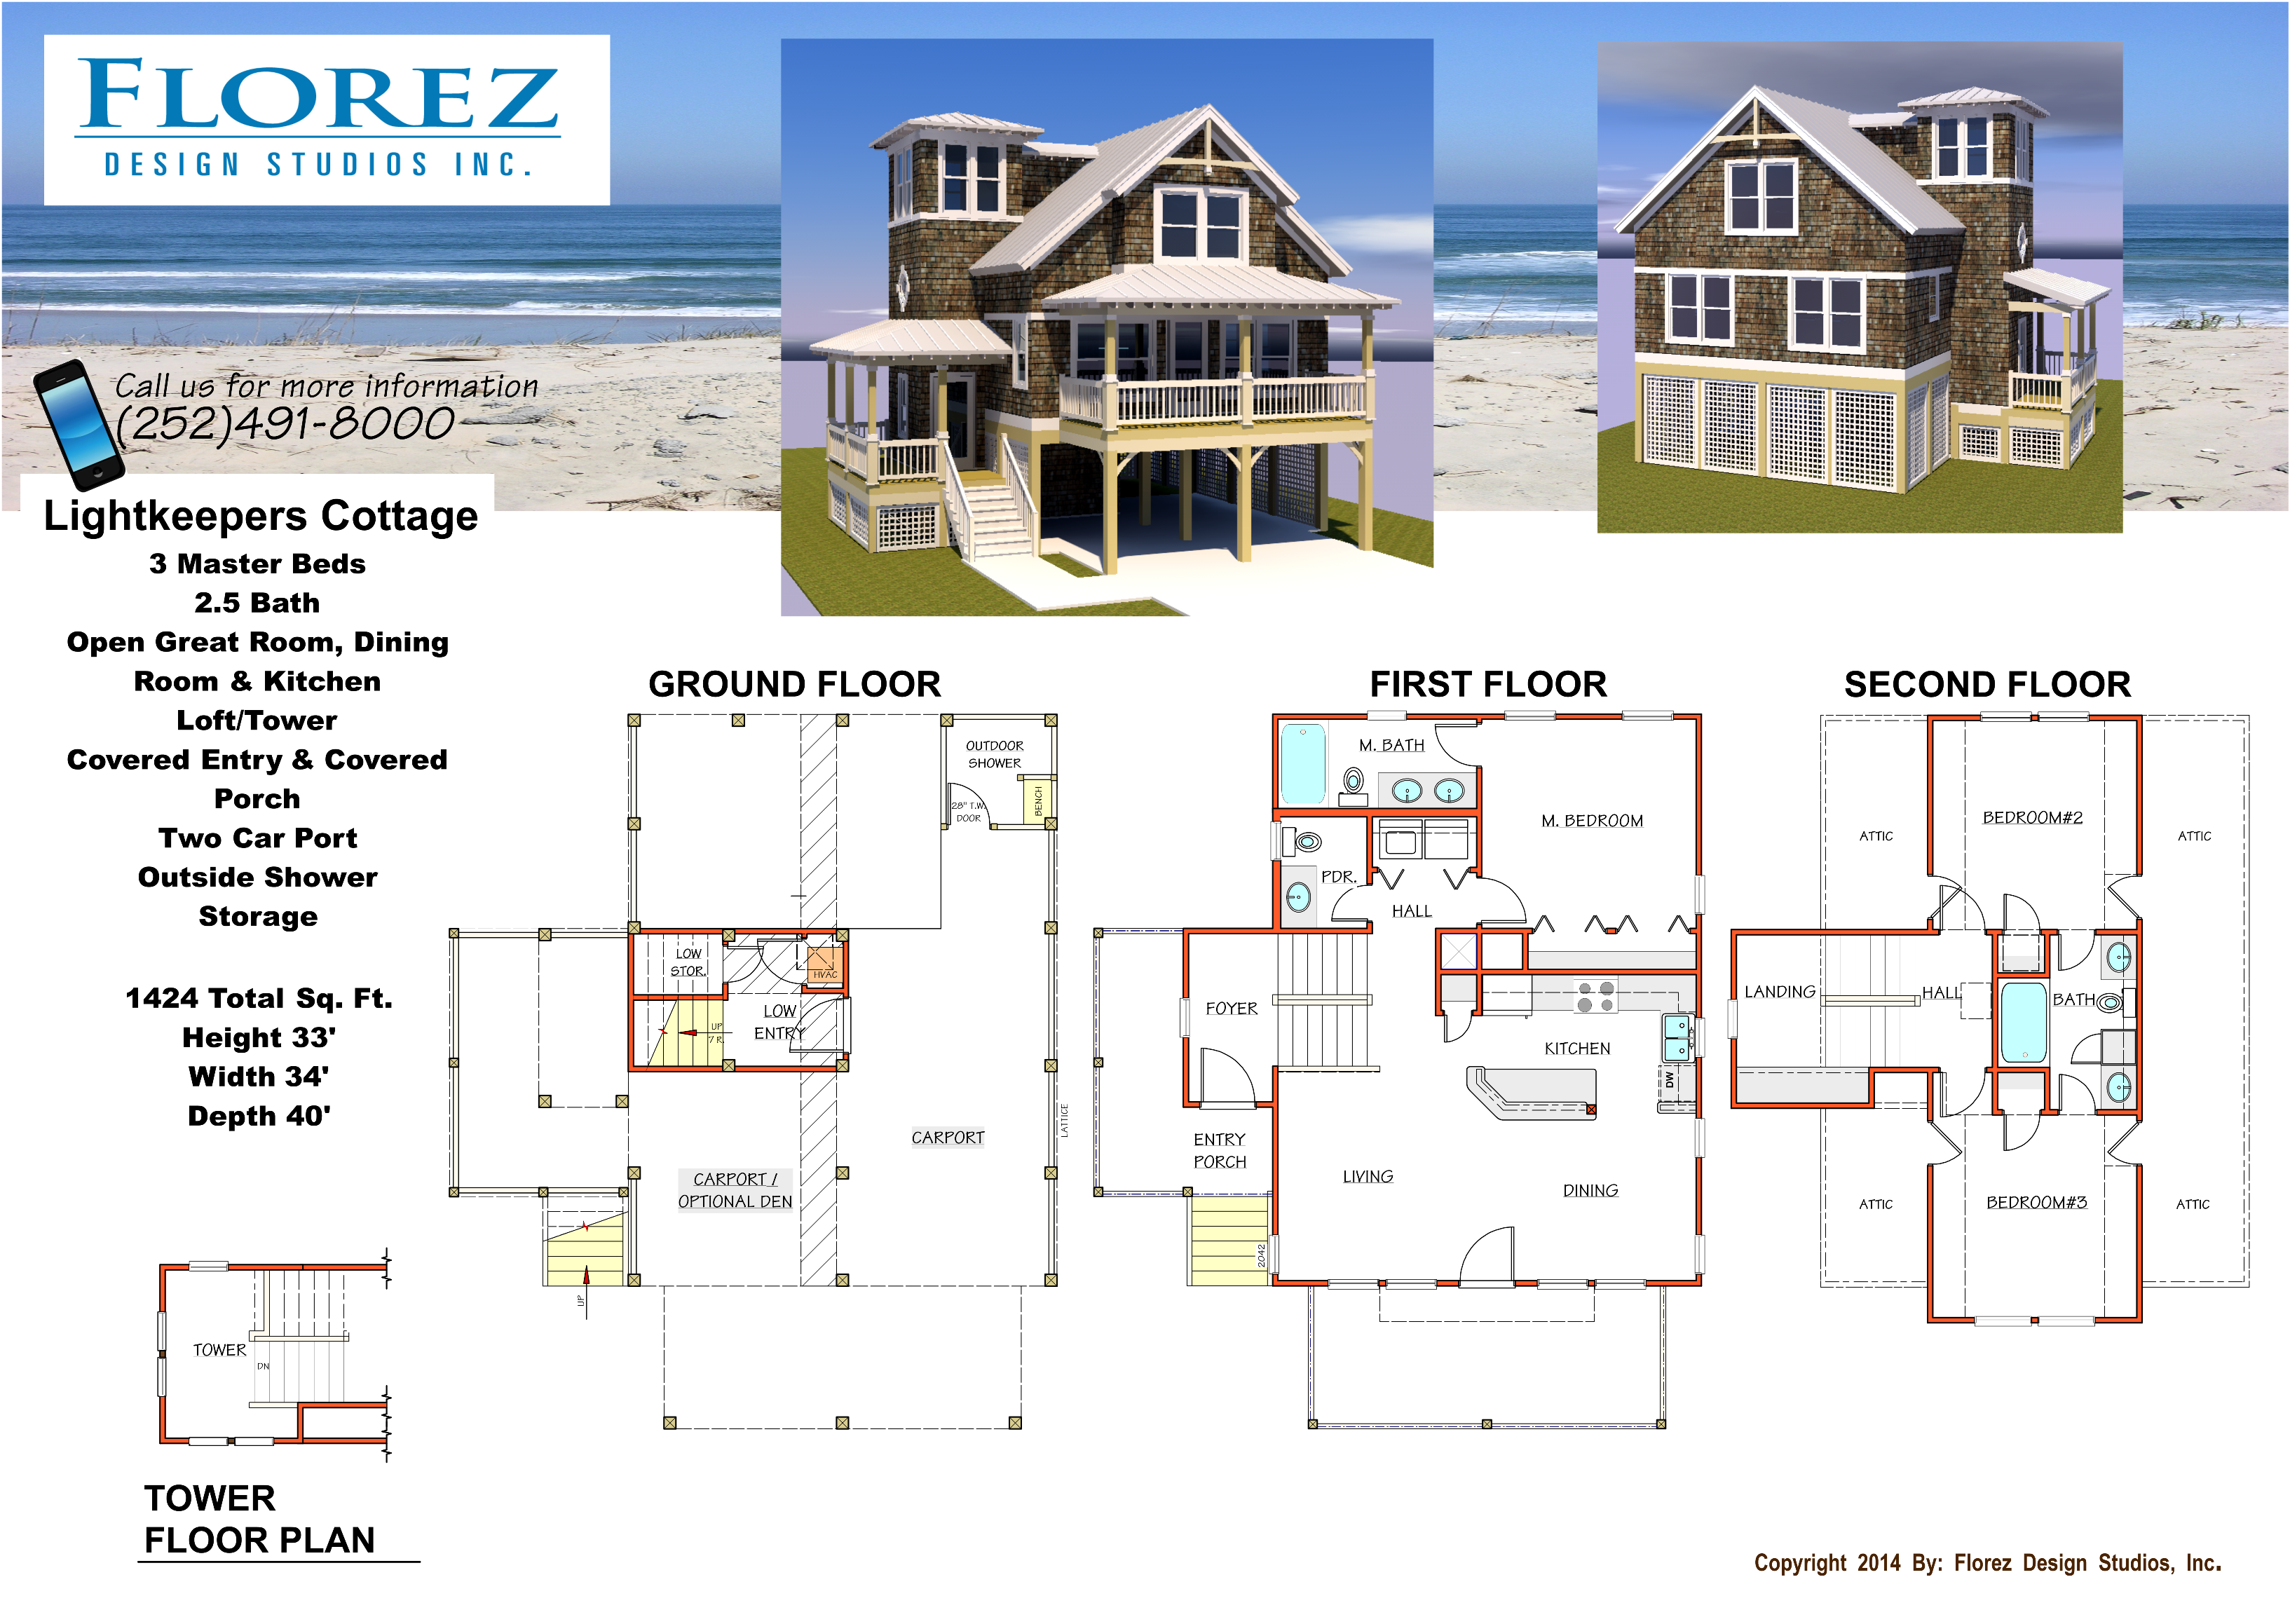 1 Nags Head Style Home Plans on asheville homes, north carolina homes, outer banks homes, nashville homes, ocean view homes, maine homes, new jersey homes, new orleans homes, charlotte homes, long island homes, pittsburgh homes, lakeview homes, mississippi homes, frisco homes, richmond homes, kentucky homes, virginia homes, charleston homes, houston homes, louisiana homes,